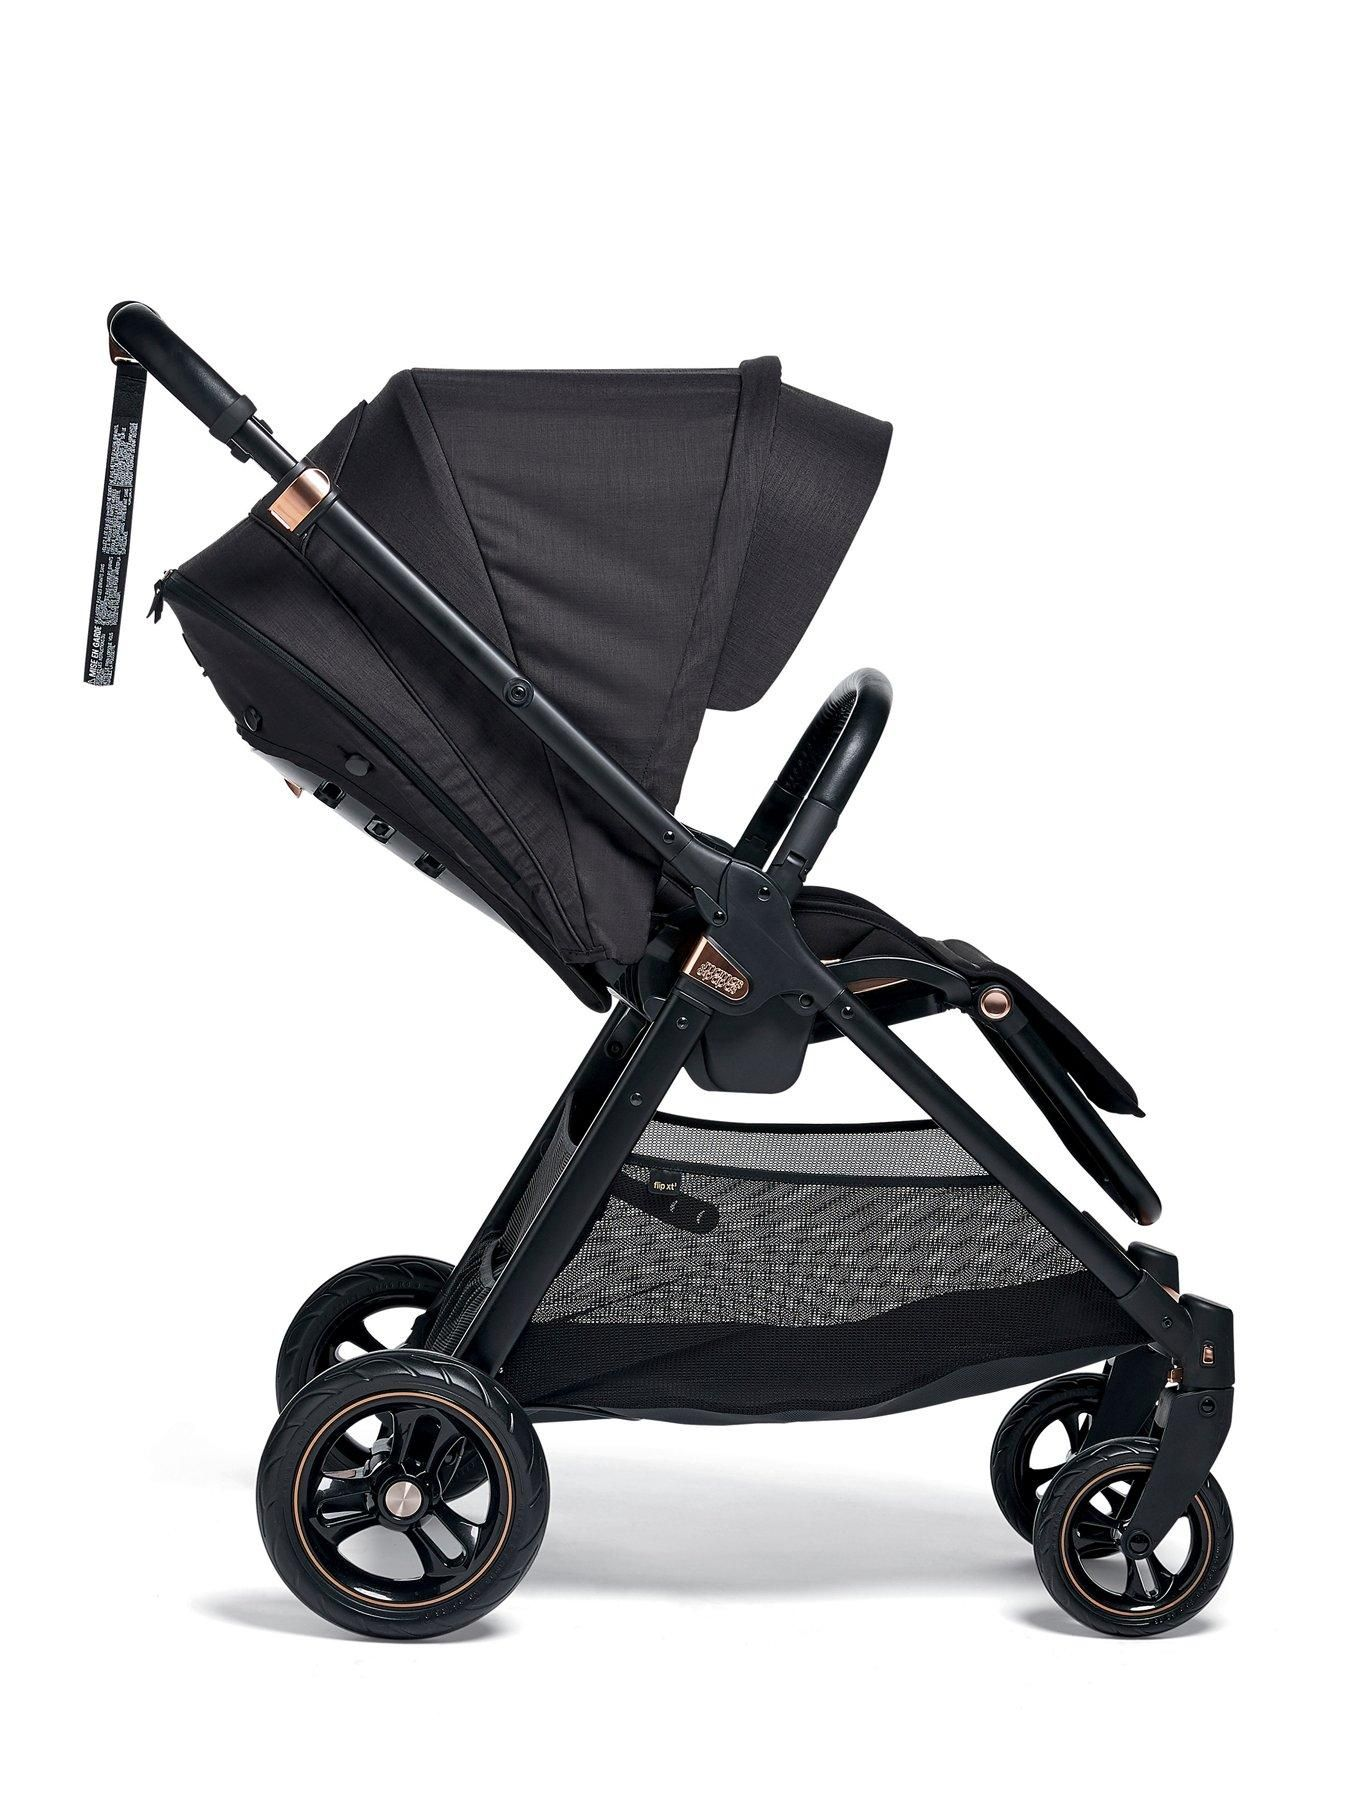 Flip XT3 Pushchair Black/Copper in 2020 Mamas and